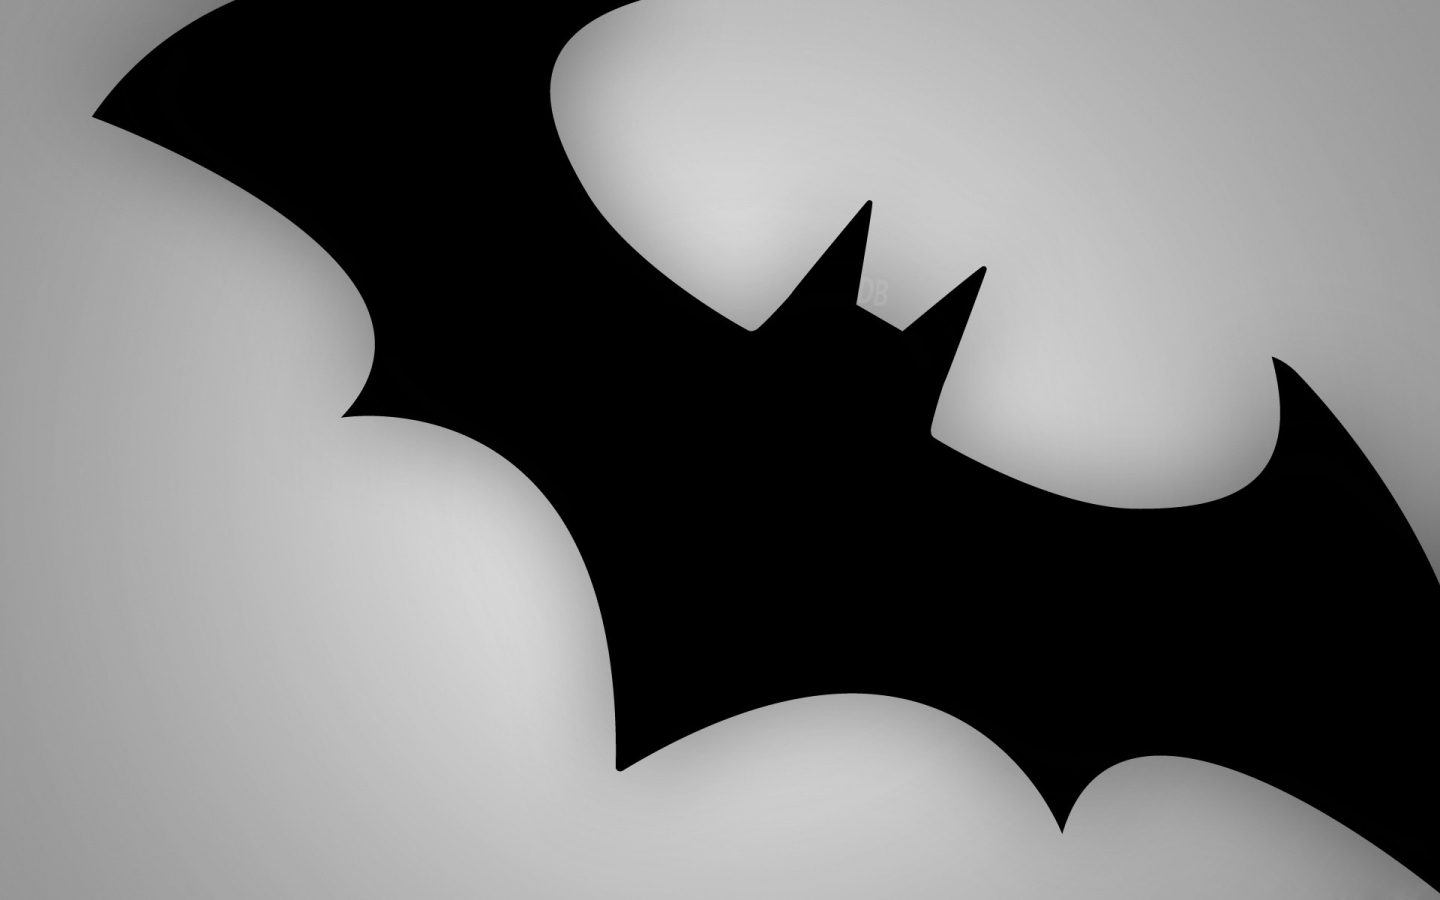 Logo de Batman - 1440x900